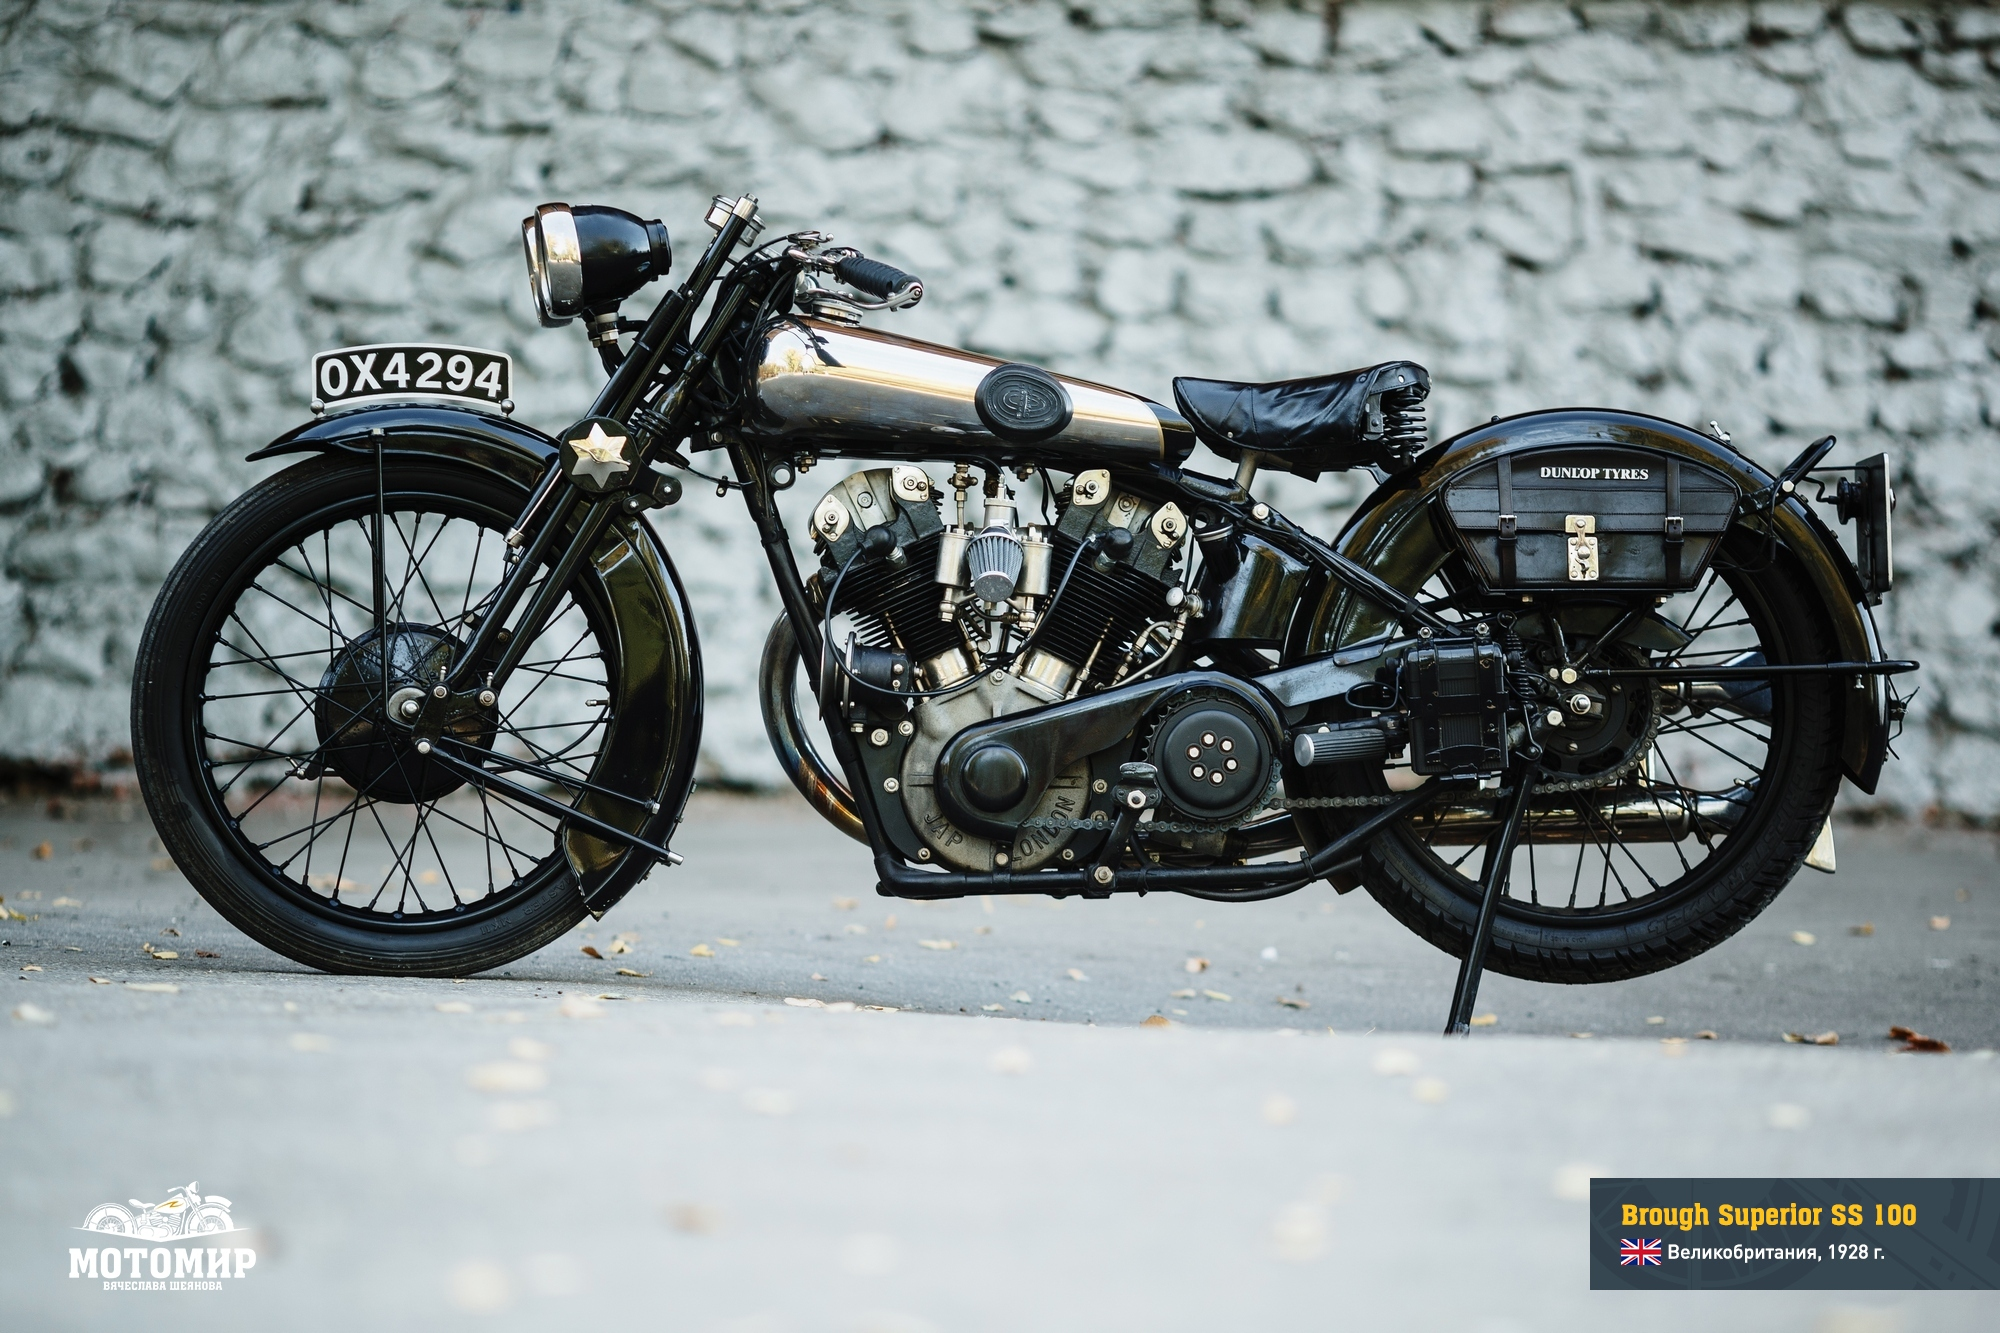 brough-superior-ss100-web-01